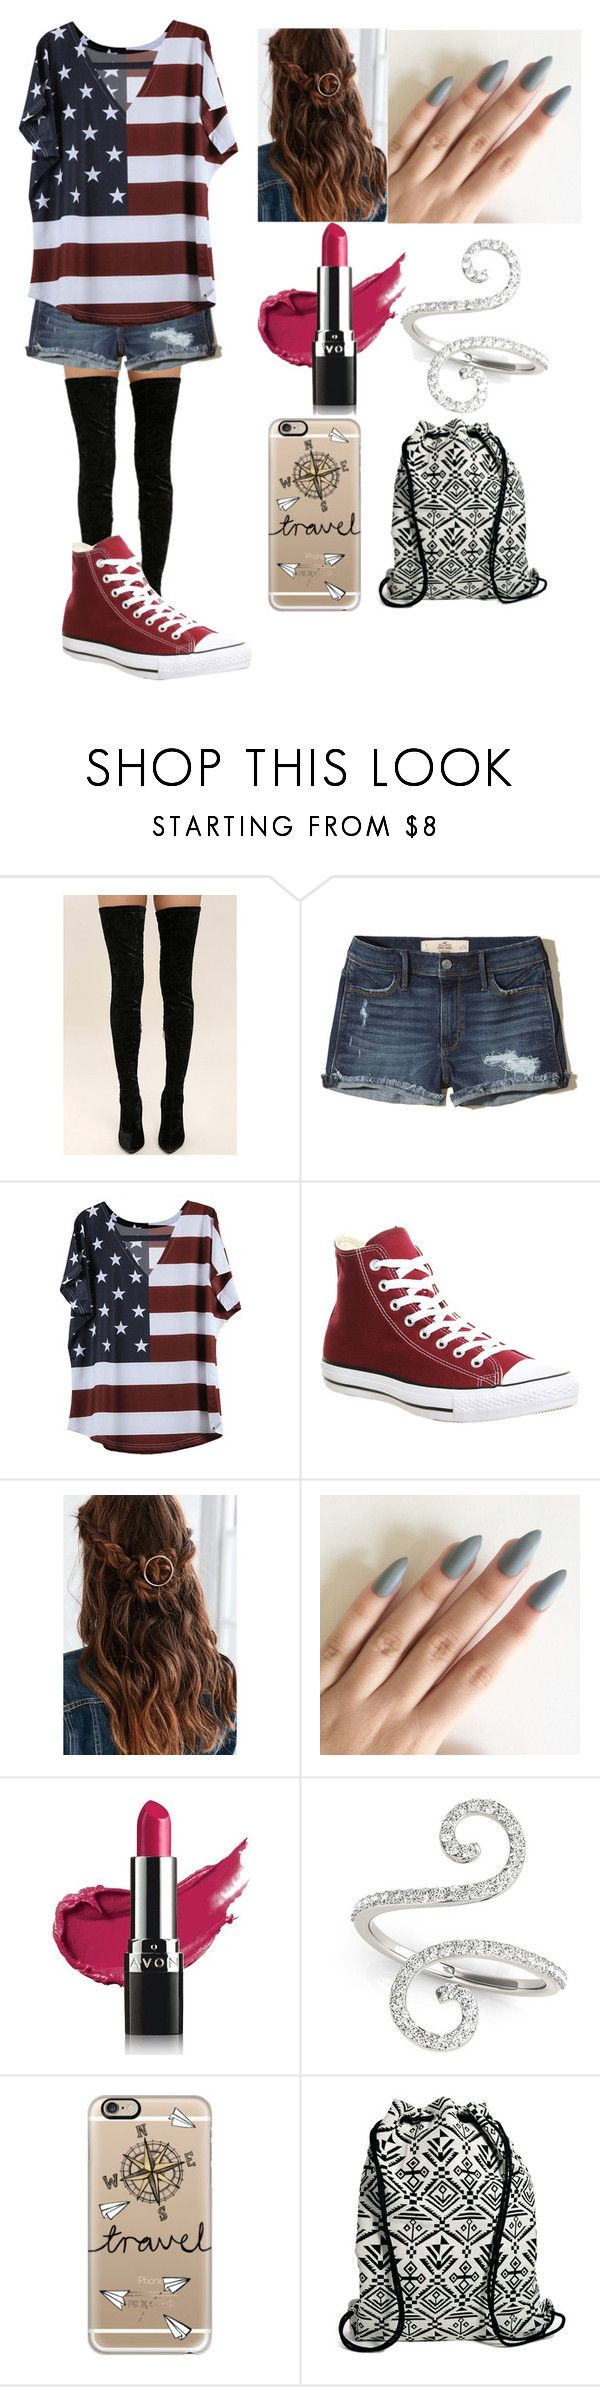 """#729"" by lucy-smith-2 ❤ liked on Polyvore featuring Cape Robbin, Hollister Co., Converse, Urban Outfitters, Avon, Allurez, Casetify, Pieces and plus size clothing"